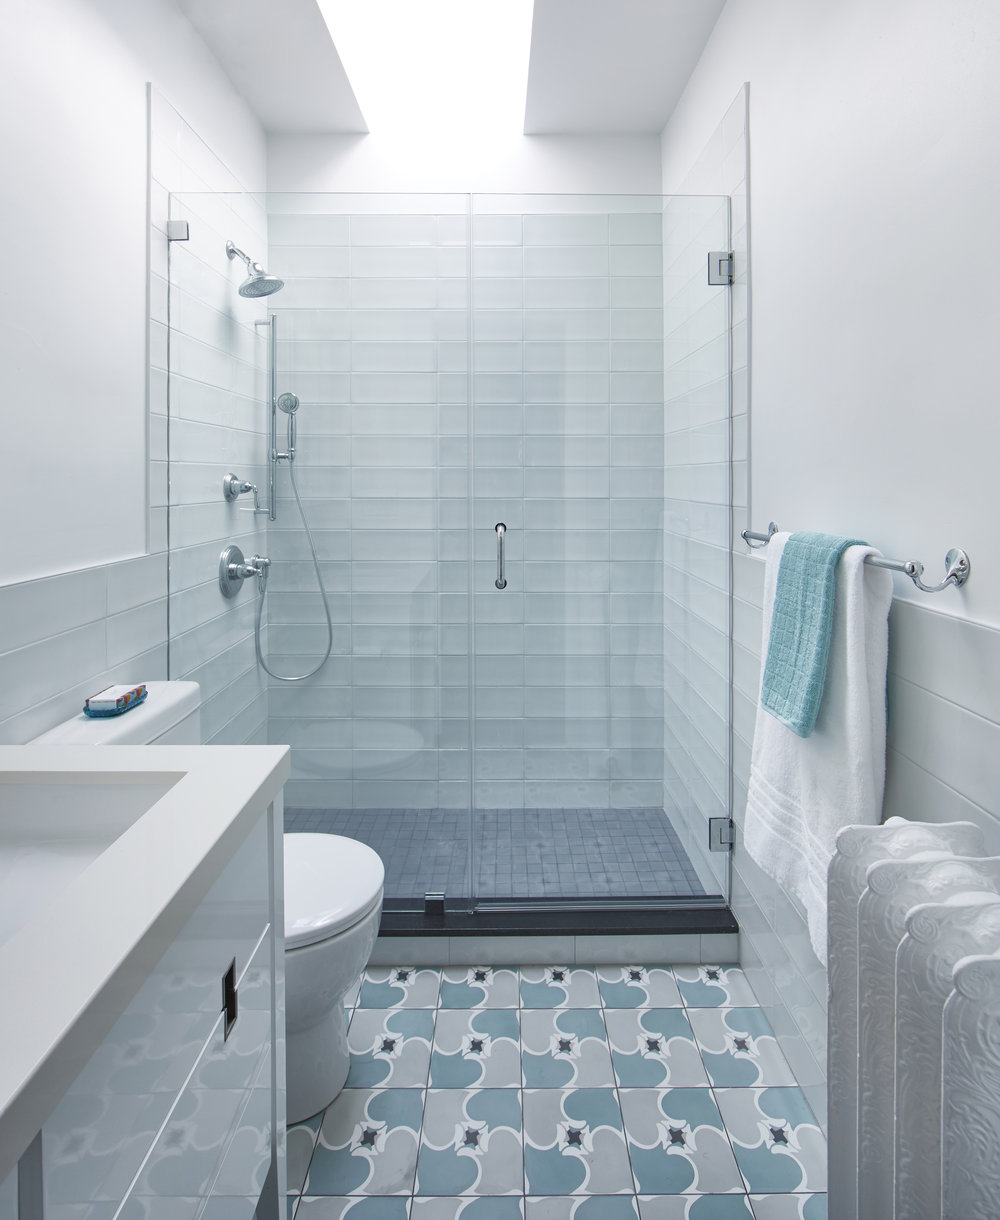 Blue-Concrete-Tile-Cute-Bathroom-JMorris-Design-Interior-Designer-Brooklyn-New-York-Online.jpg